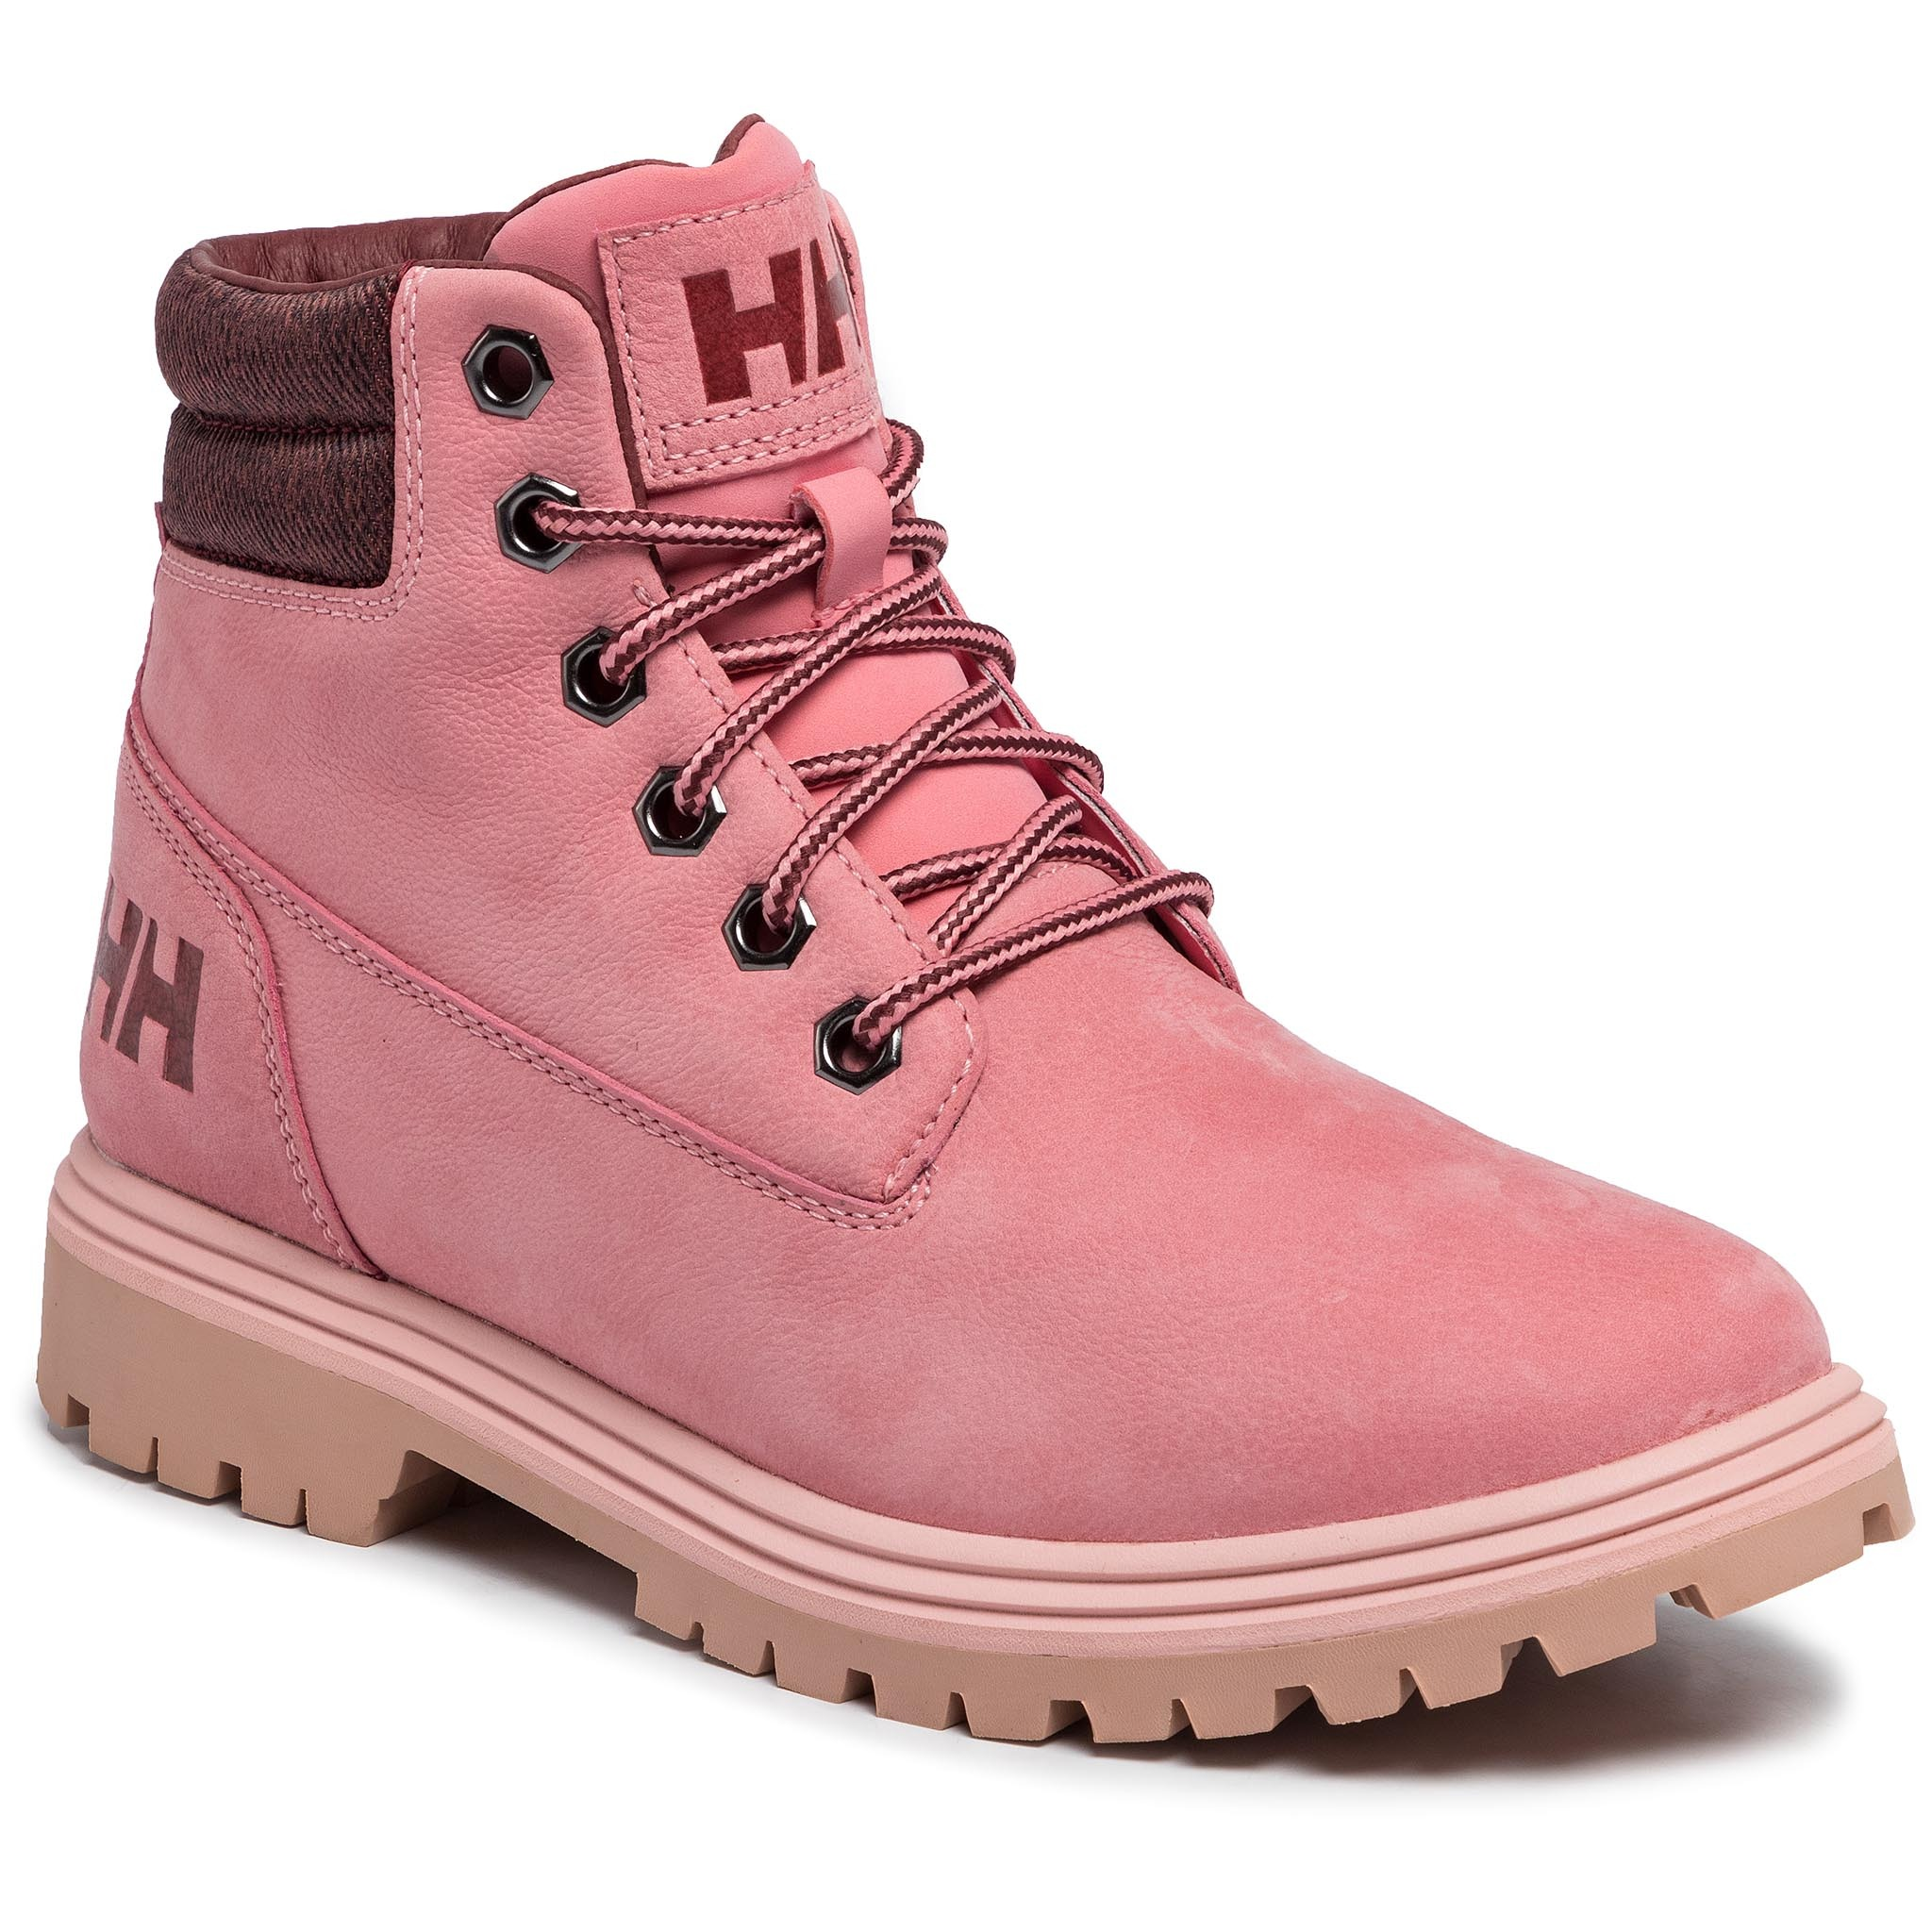 Trappers HELLY HANSEN - Fremont 114-45.193 Flamingo Pink/Andorra/Tuscany